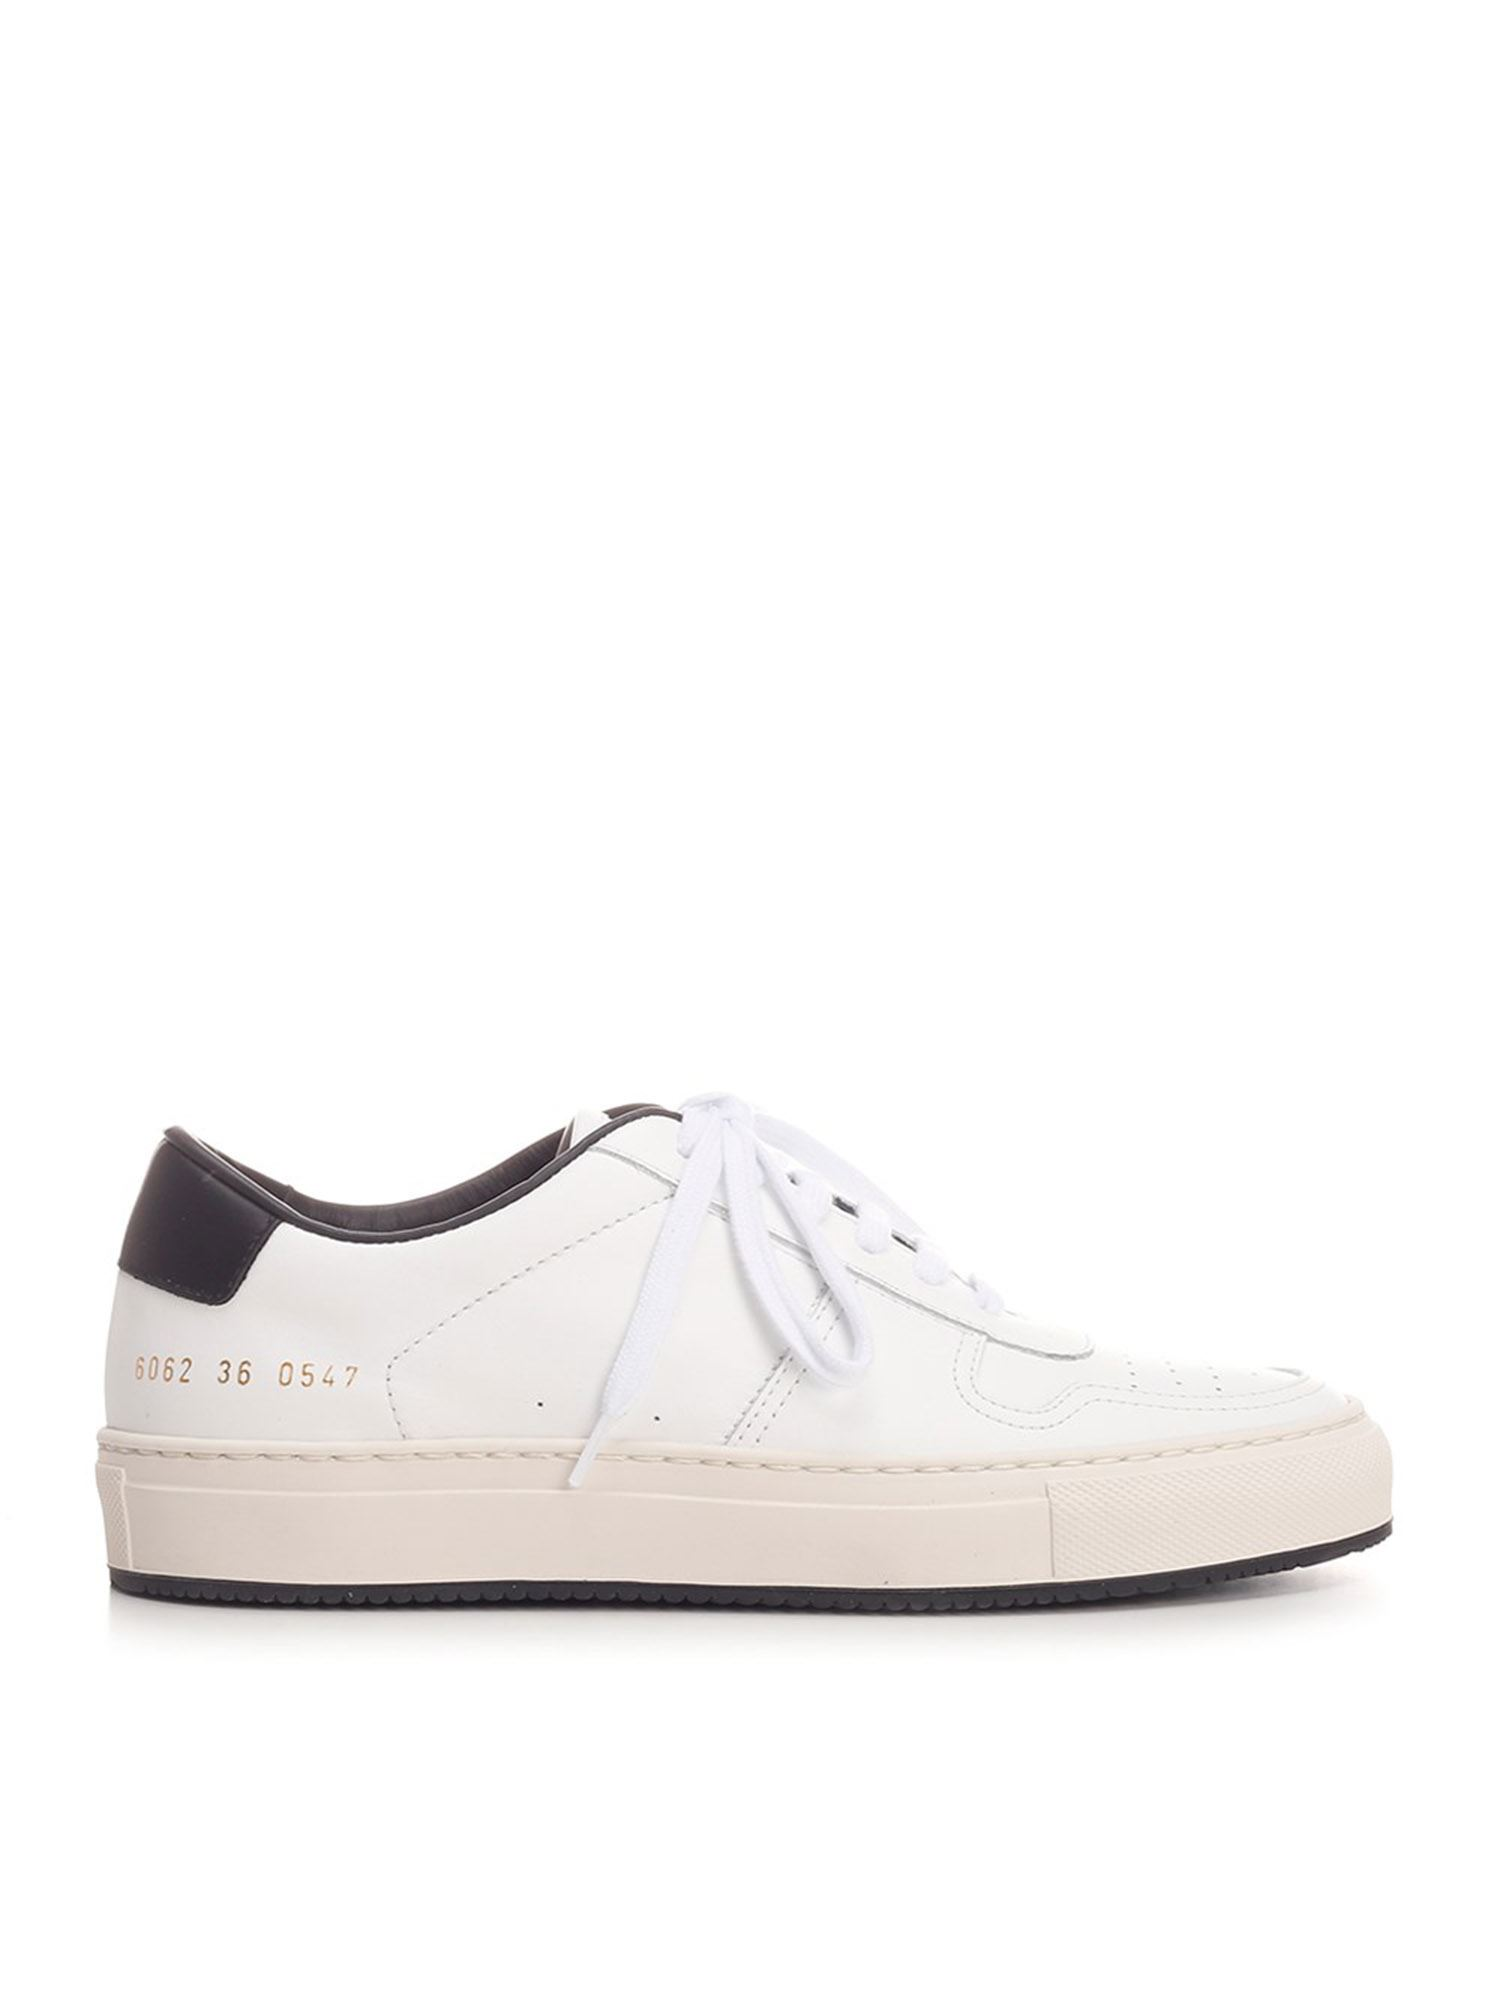 Common Projects Low tops BBALL 90 SNEAKERS IN WHITE AND BLACK